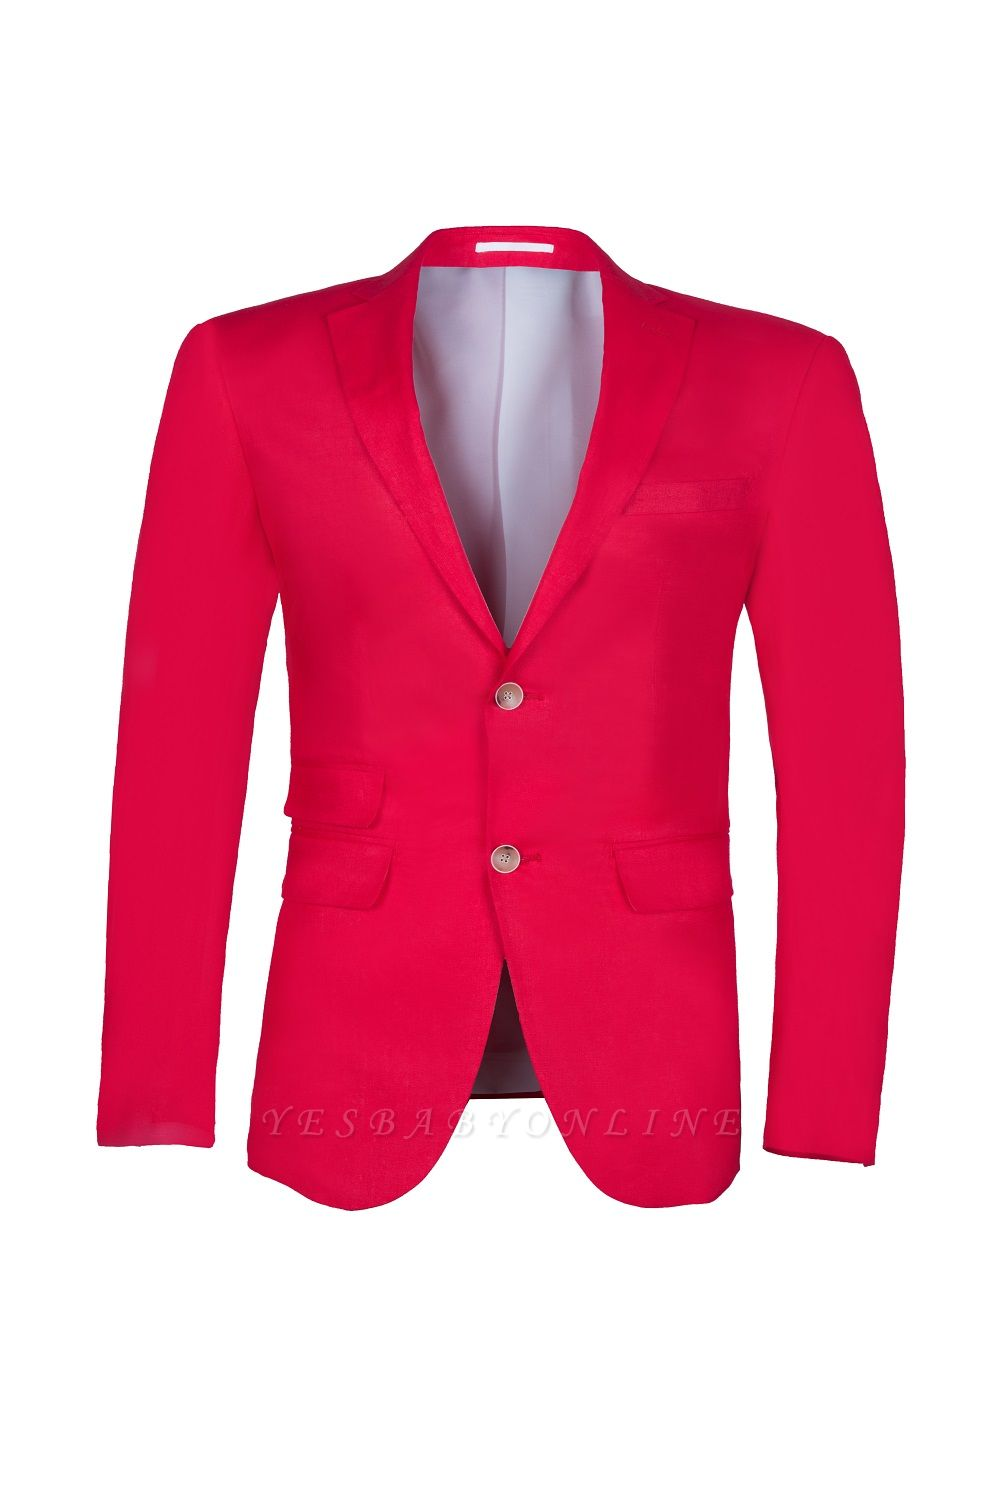 Popular Stylish Design Back Vent Peak Lapel Red Best Men Groomsmen